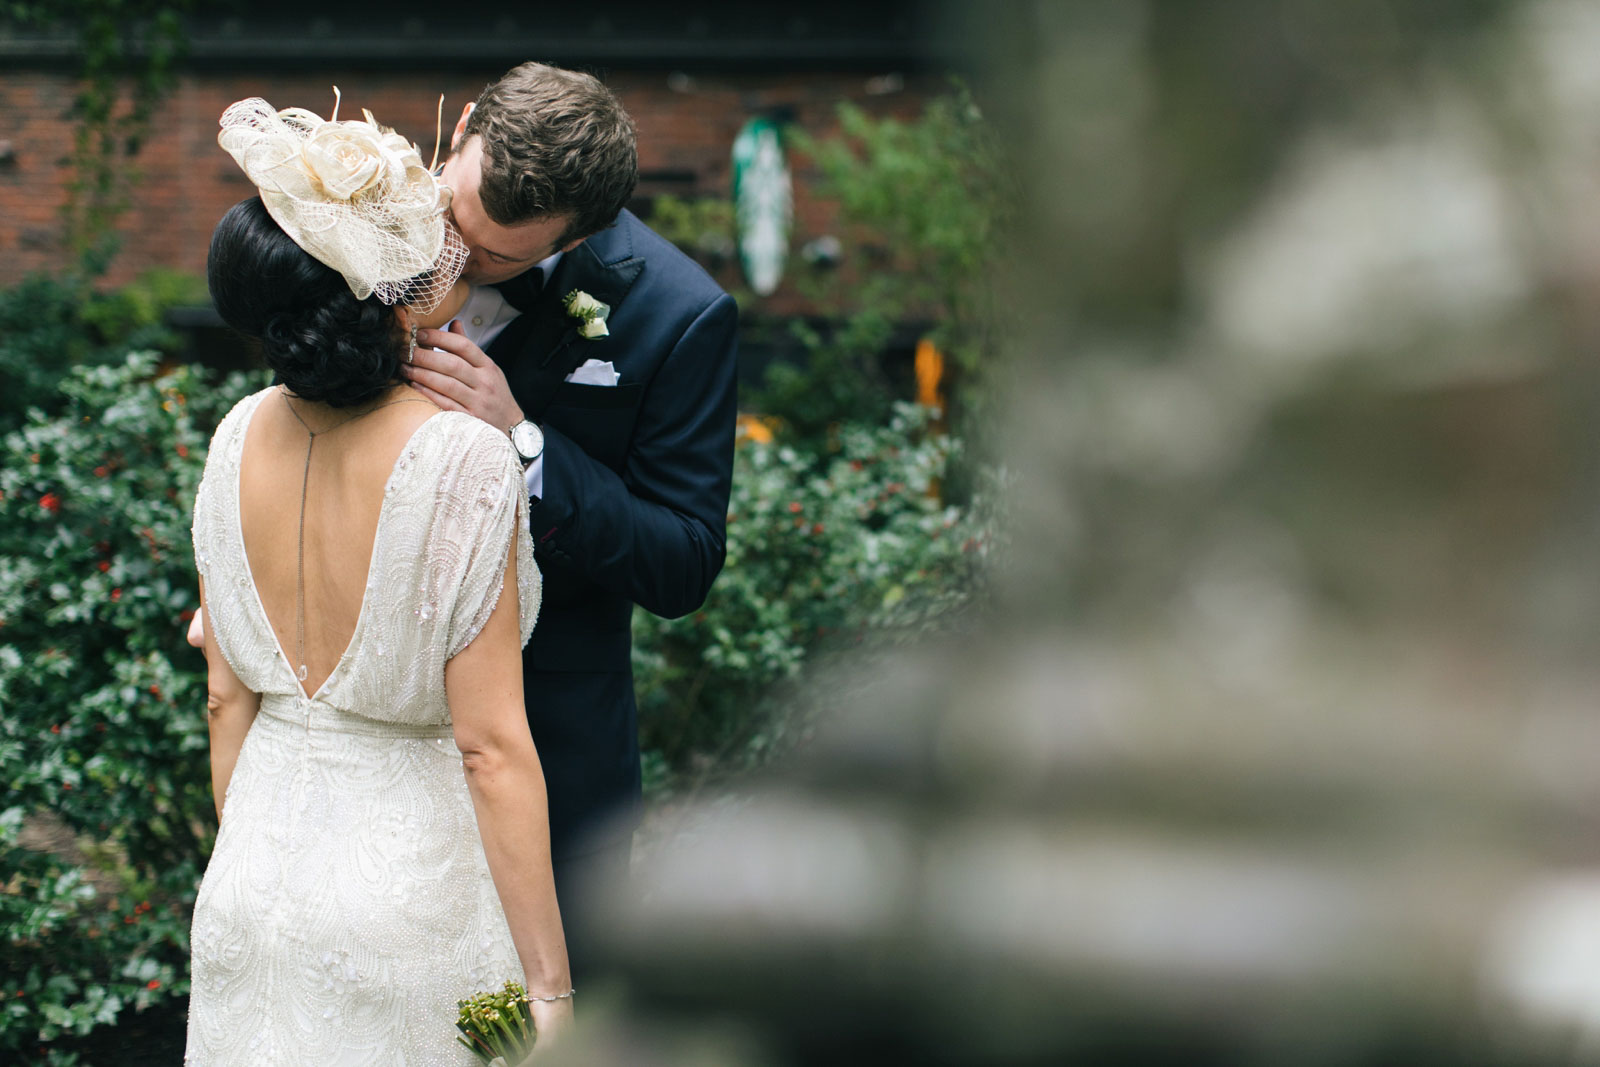 groom kisses bride romantically during their first look outside in garden at old boston city hall